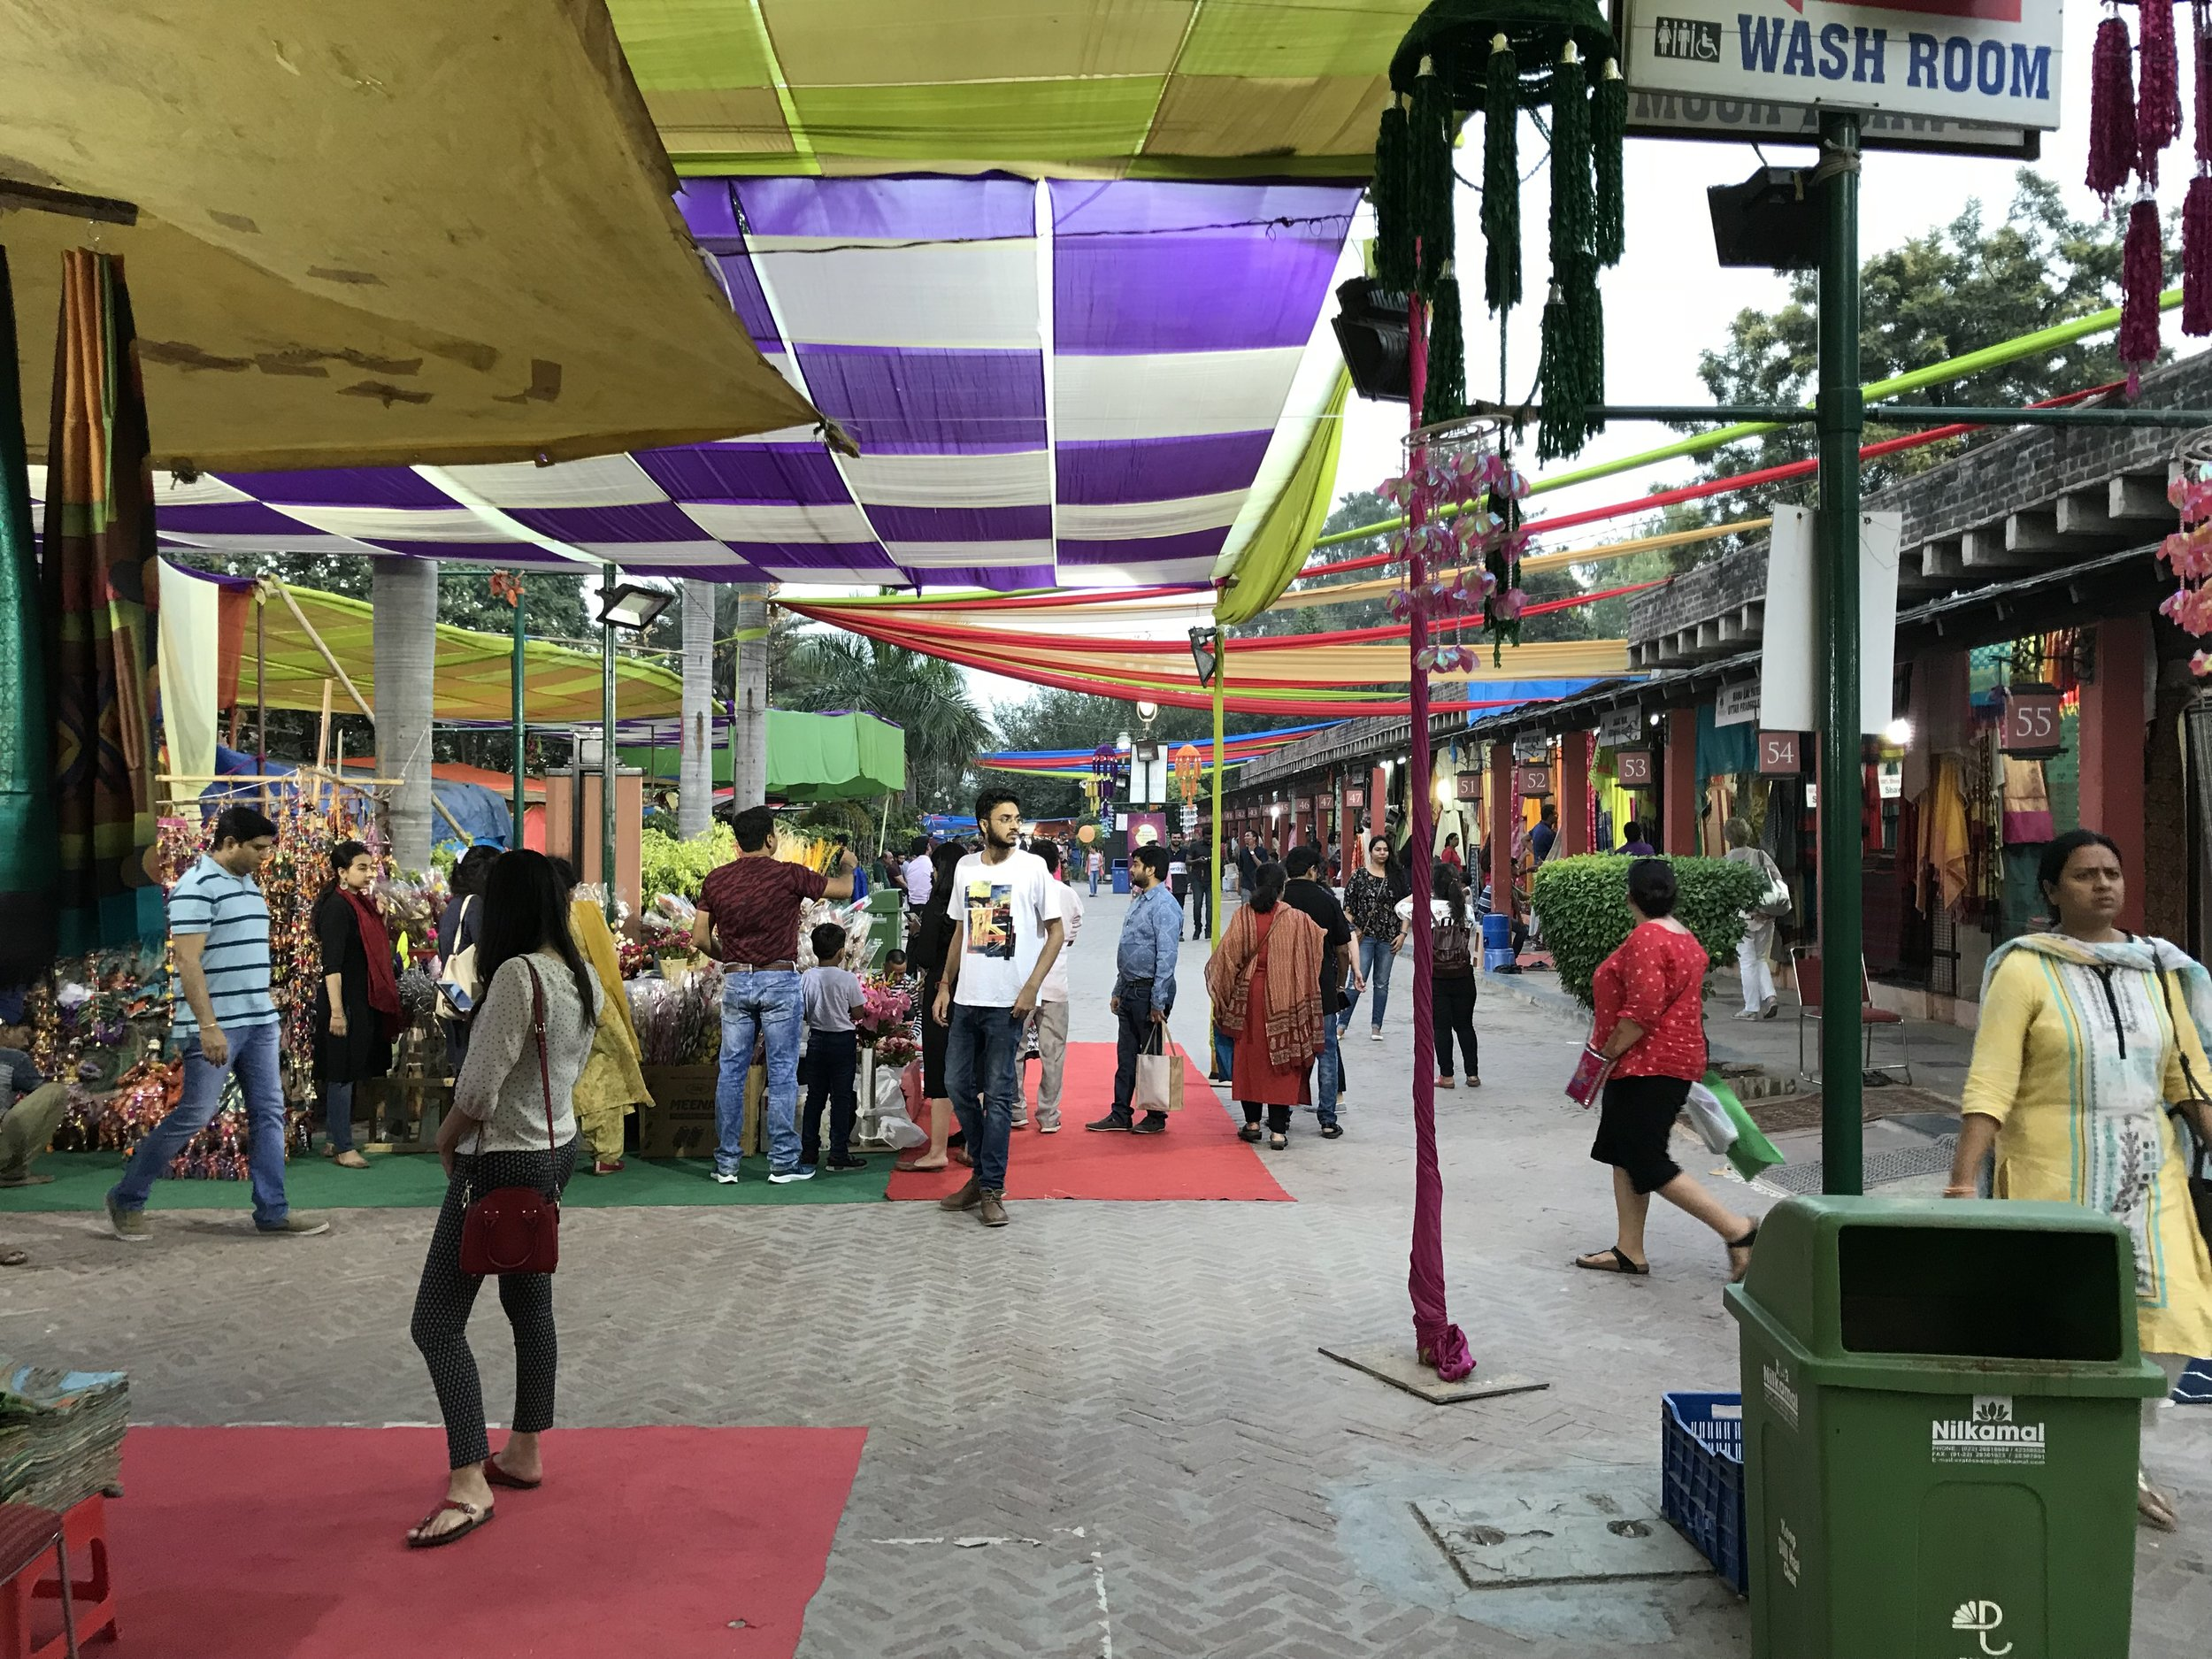 The entrance to the craft bazaar.